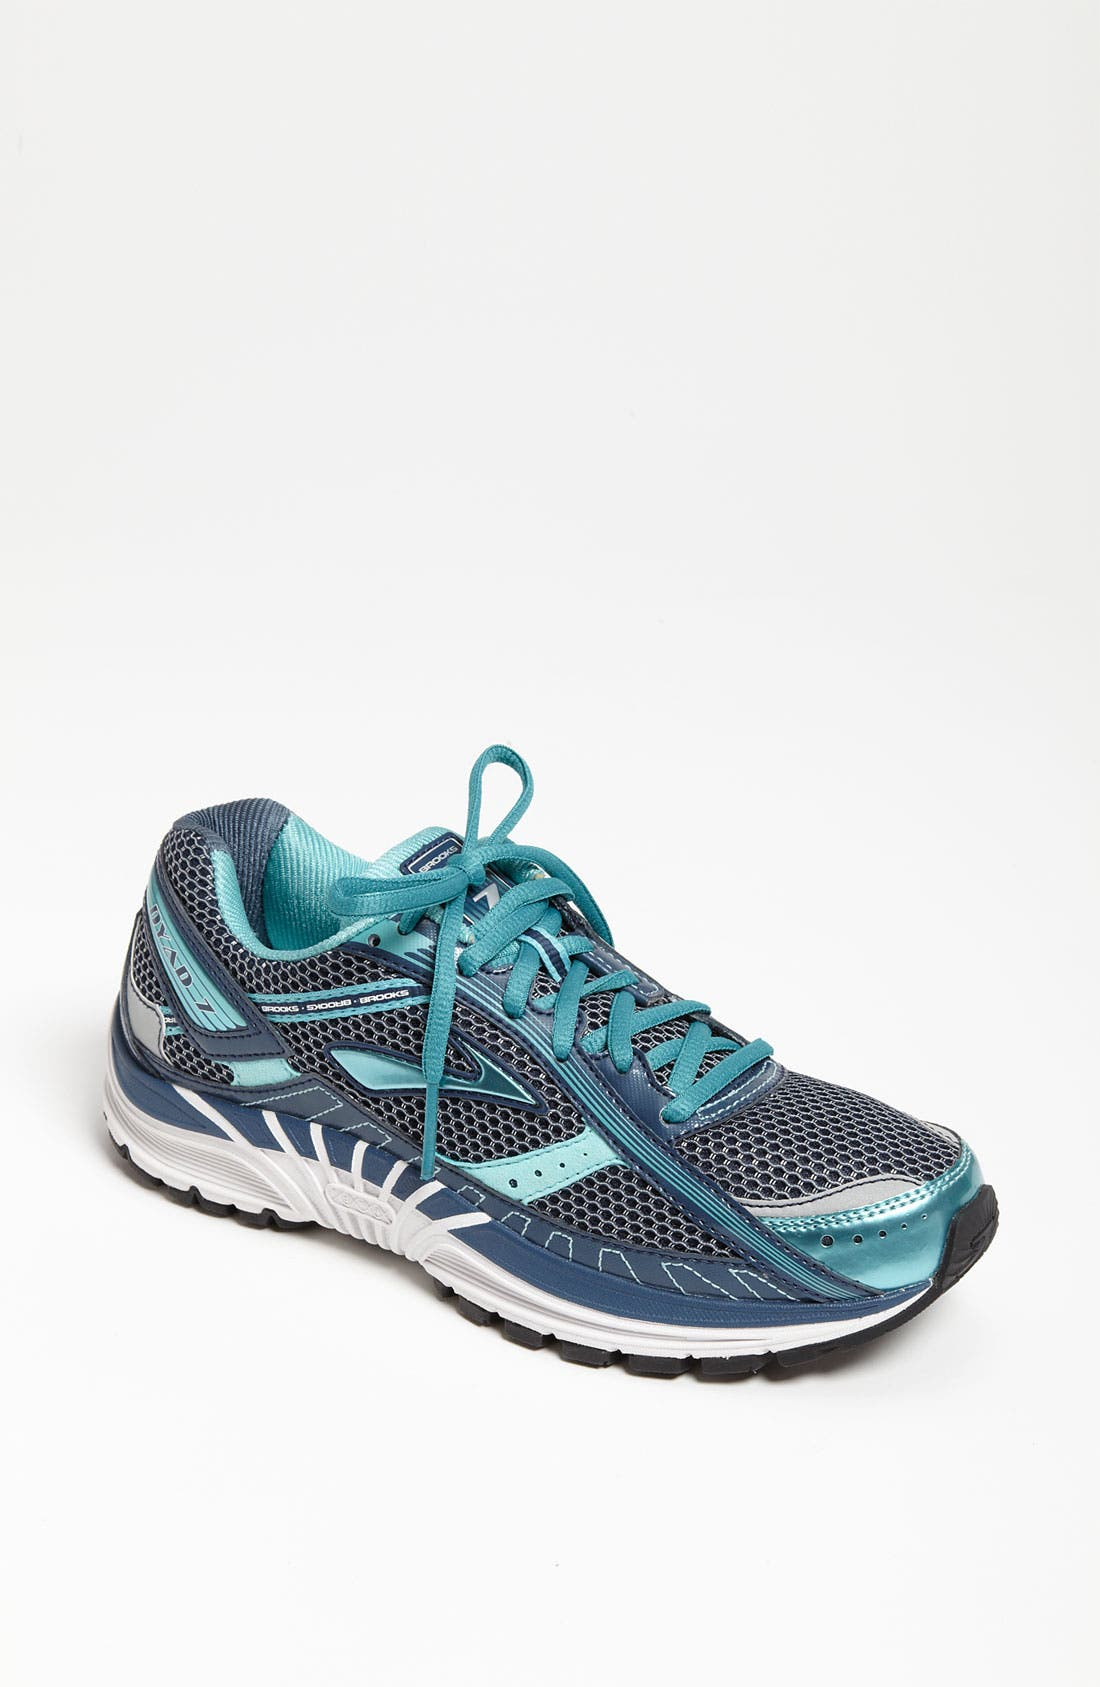 Alternate Image 1 Selected - Brooks 'DYAD 7' Running Shoe (Women)